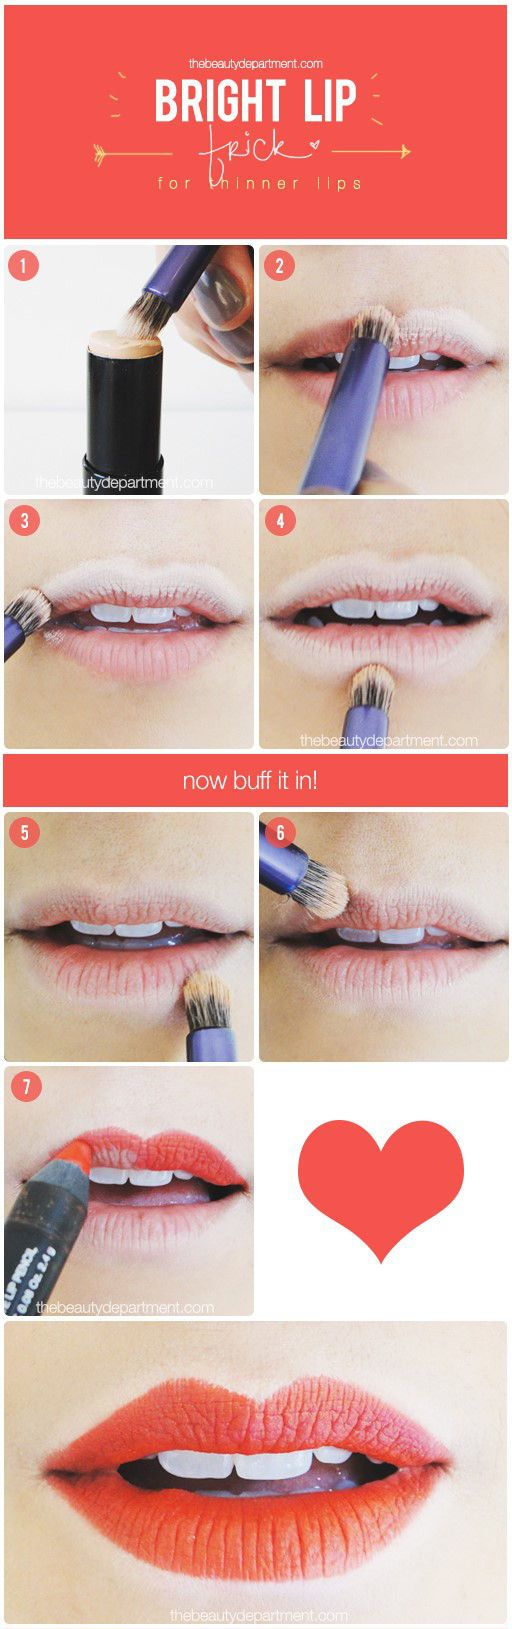 How To Wear Bright Lipstick On Thinner Lips